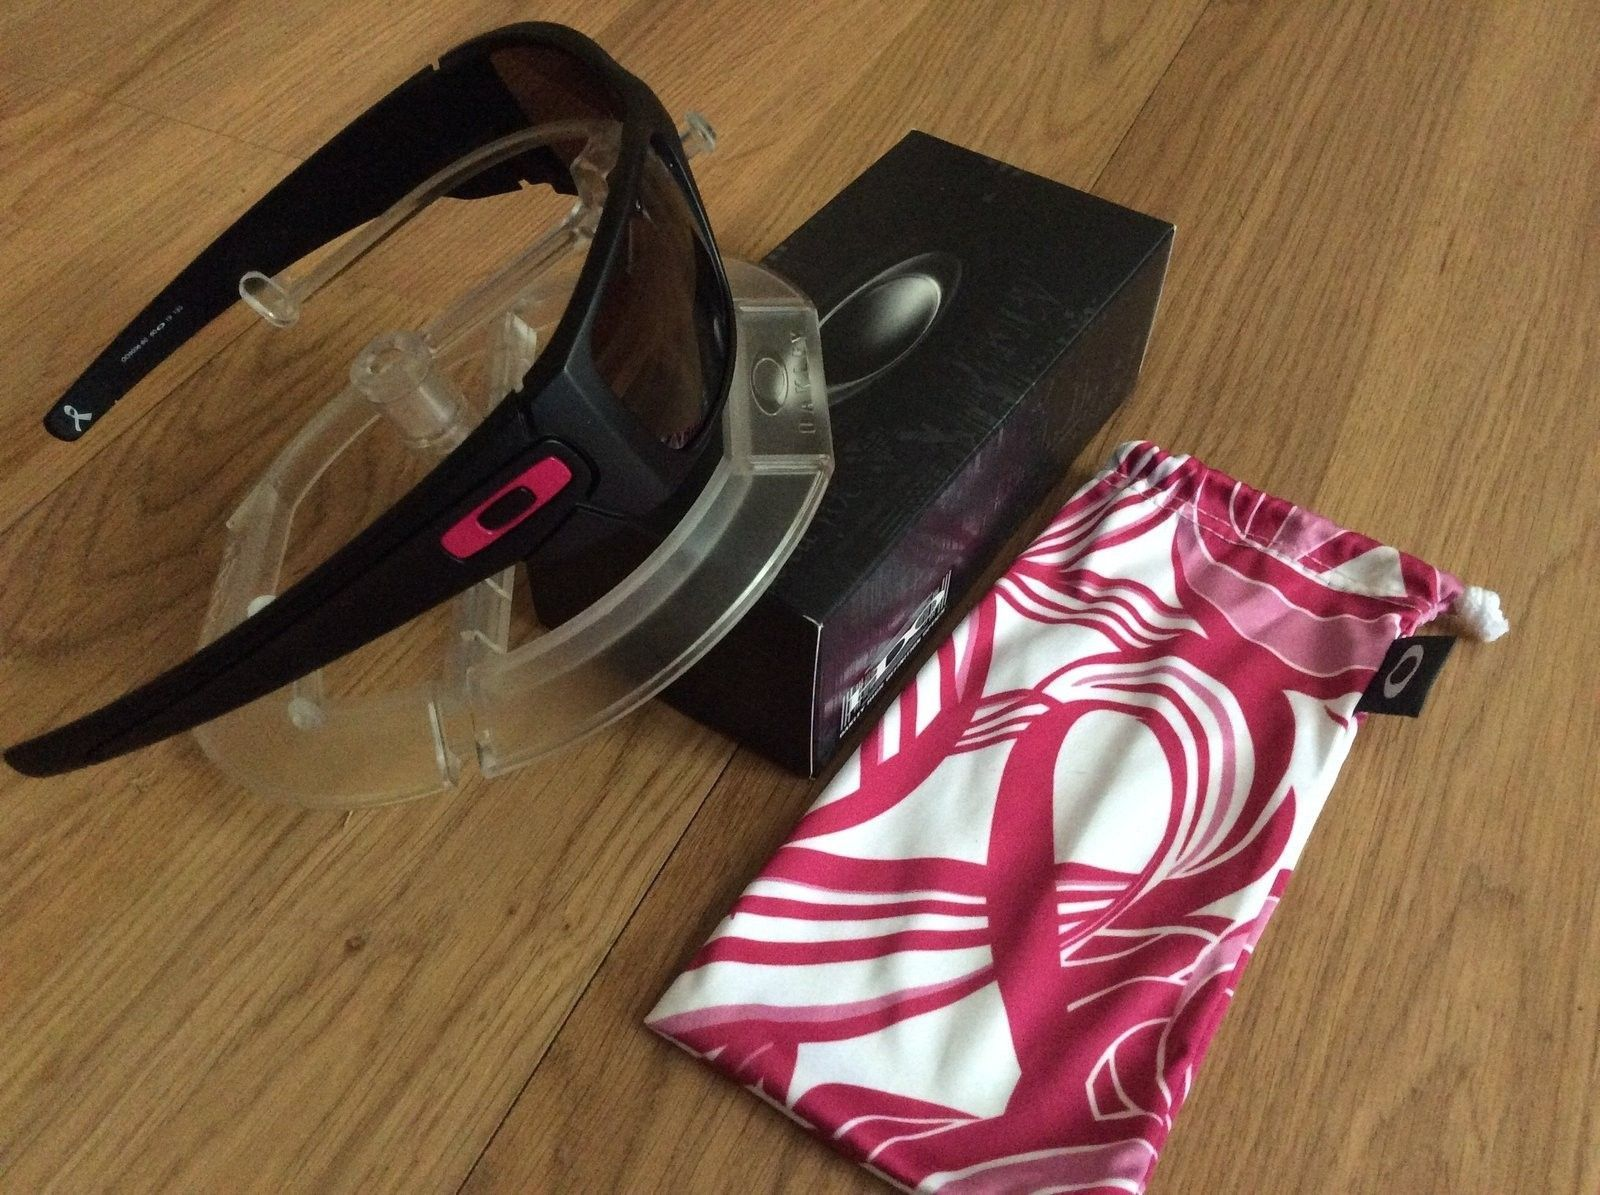 BNIB Breast Cancer Fuel Cell $100 Shipped - image.jpg